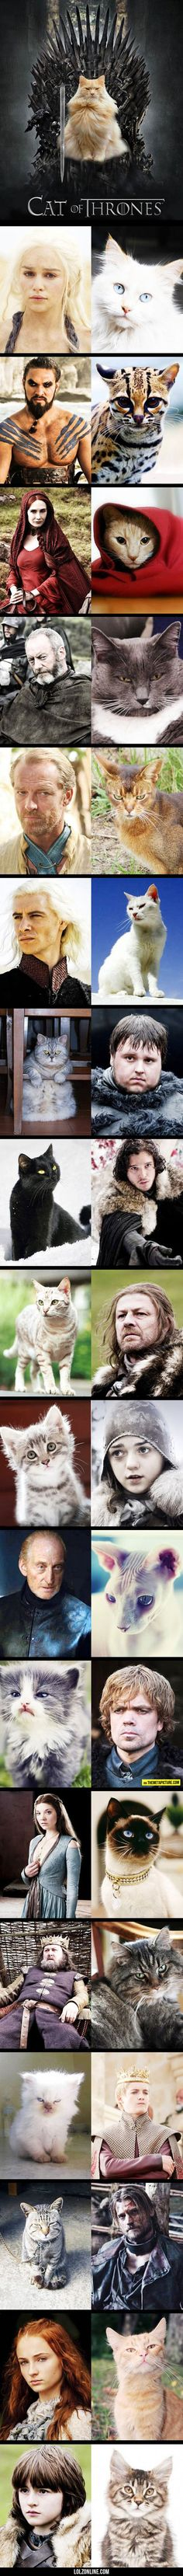 The Cat Of Thrones